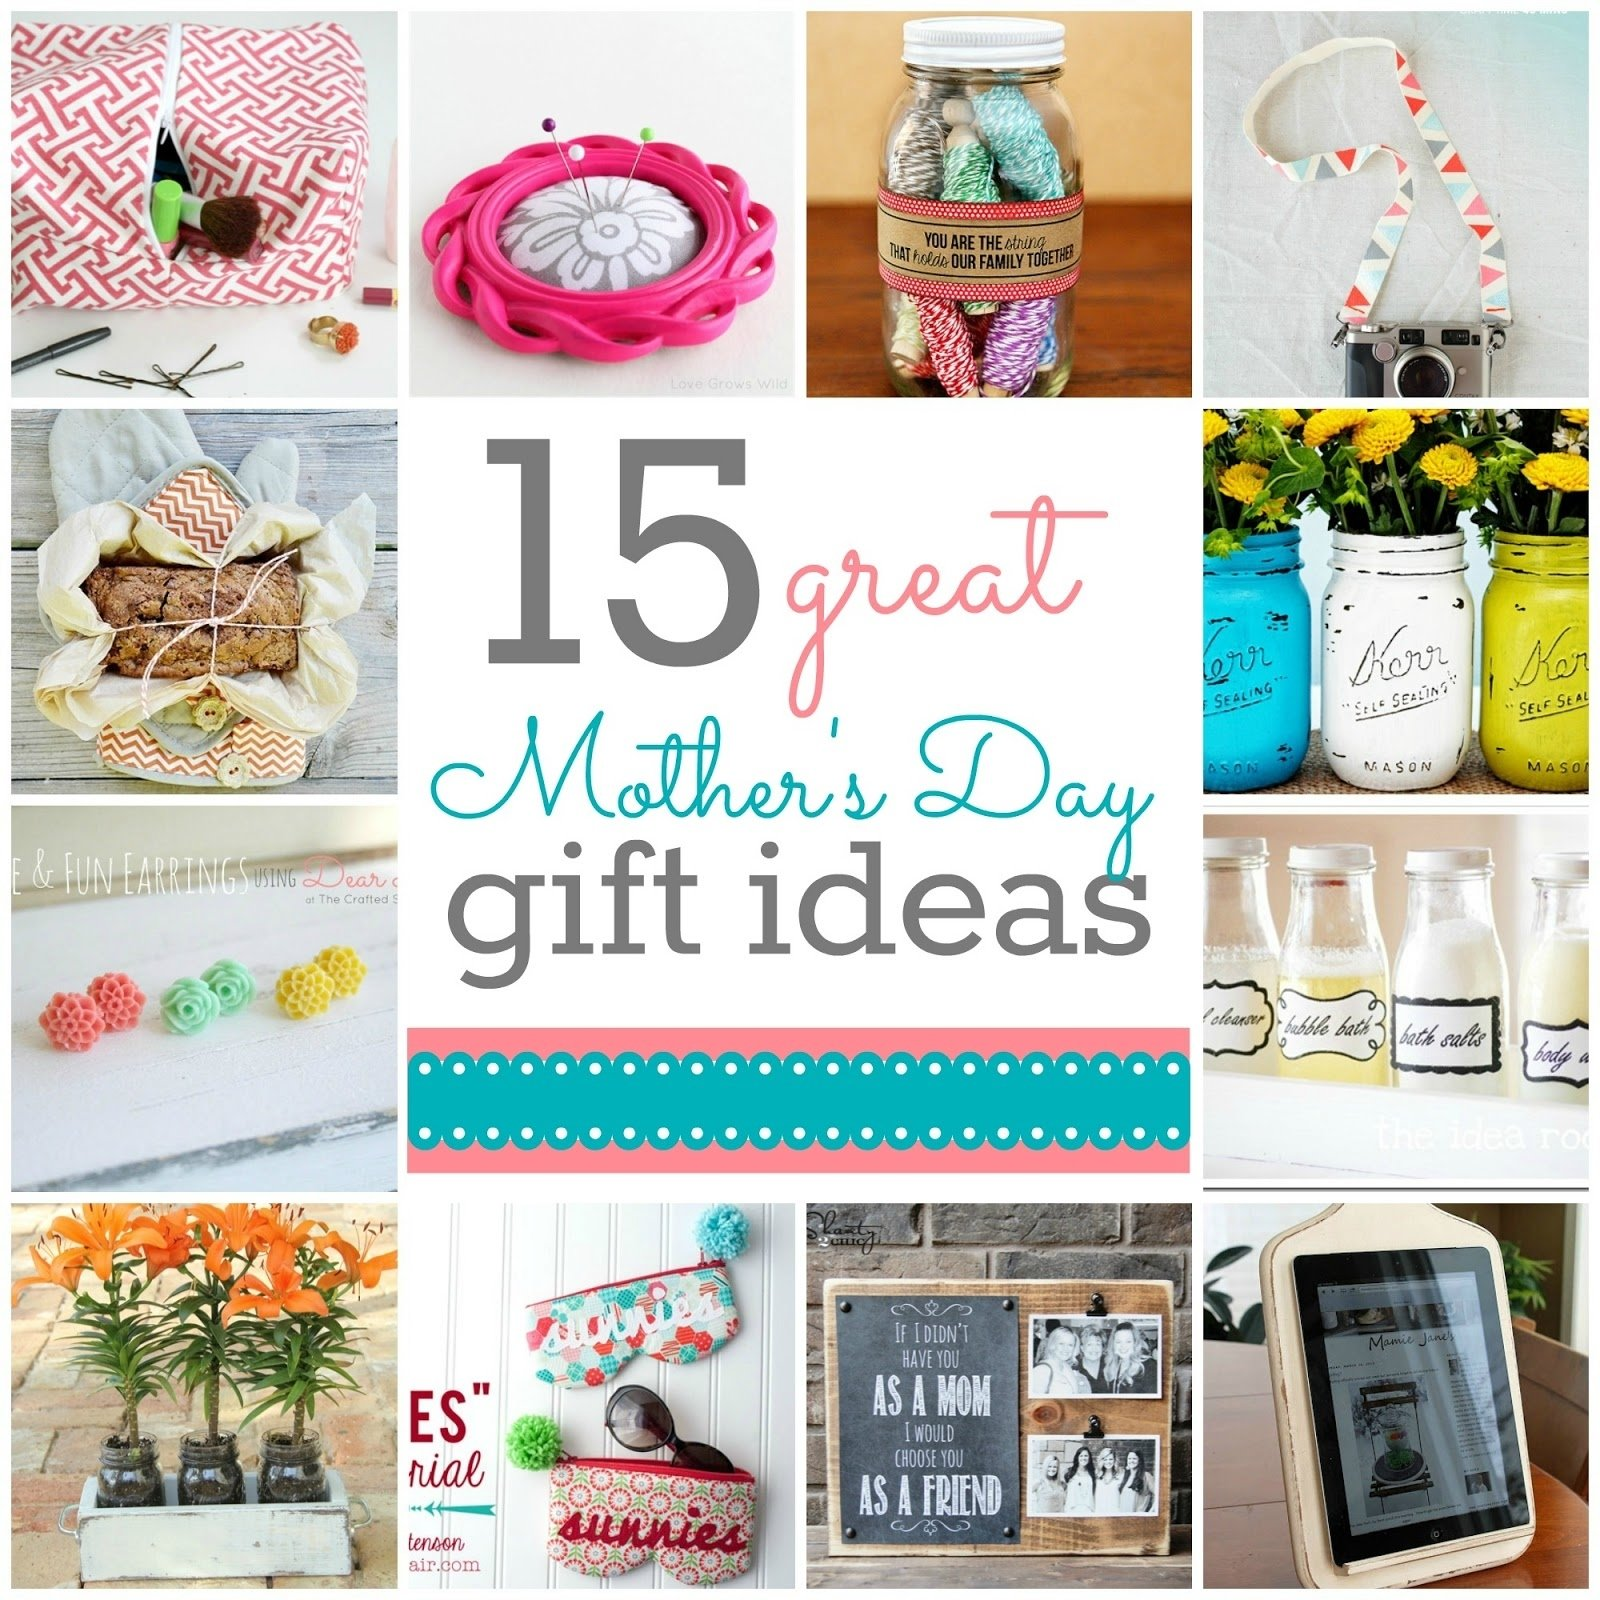 10 Stylish Gift Ideas For A Mom gift ideas mom mforum